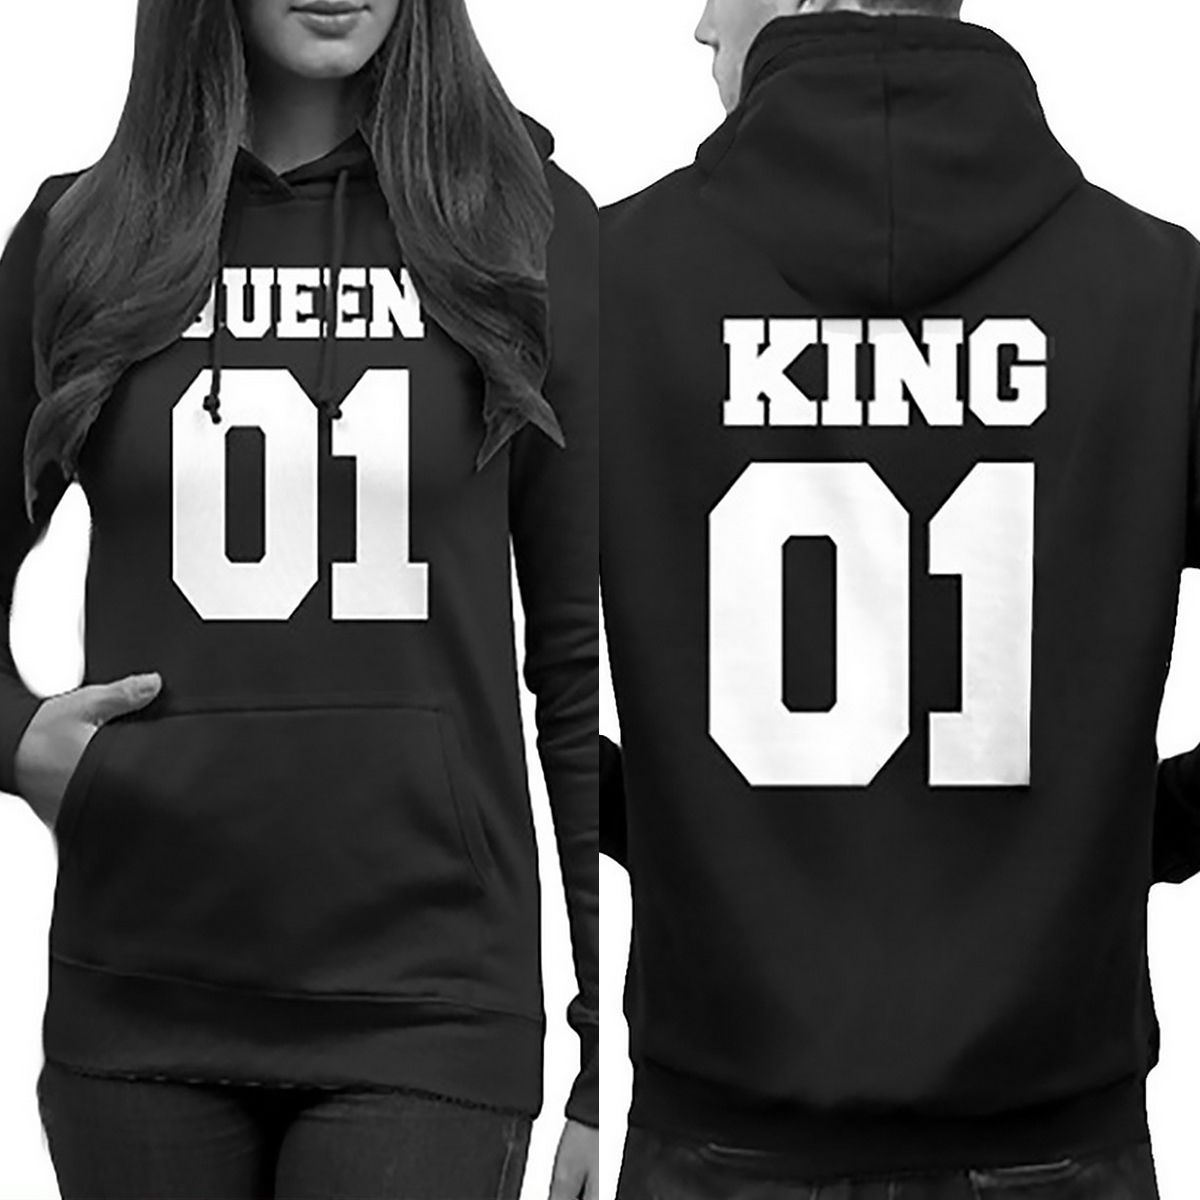 f803e0c8eb King And Queen His-And-Hers Design Couple Matching Funny Cute Hooded  Sweater Kapucnis